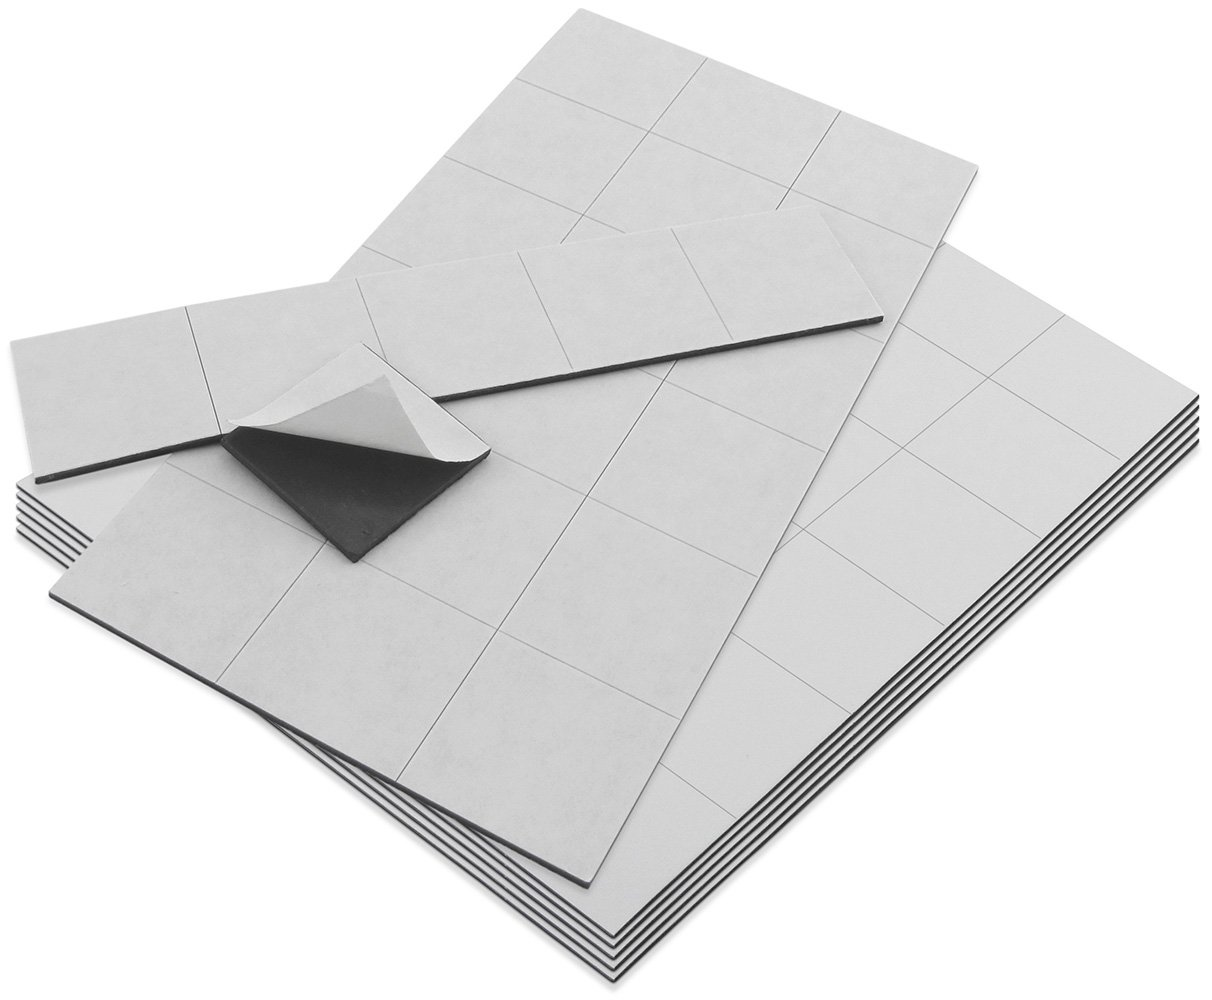 Master Magnetics ZGN60APAADCR4X6X6 Flexible Magnet Squares with Adhesive Back, 1/16'' Thick, 1'' Wide, 1'' Length Scored on Sheet, 144-1'' x 1'' Pieces (Pack of 144)